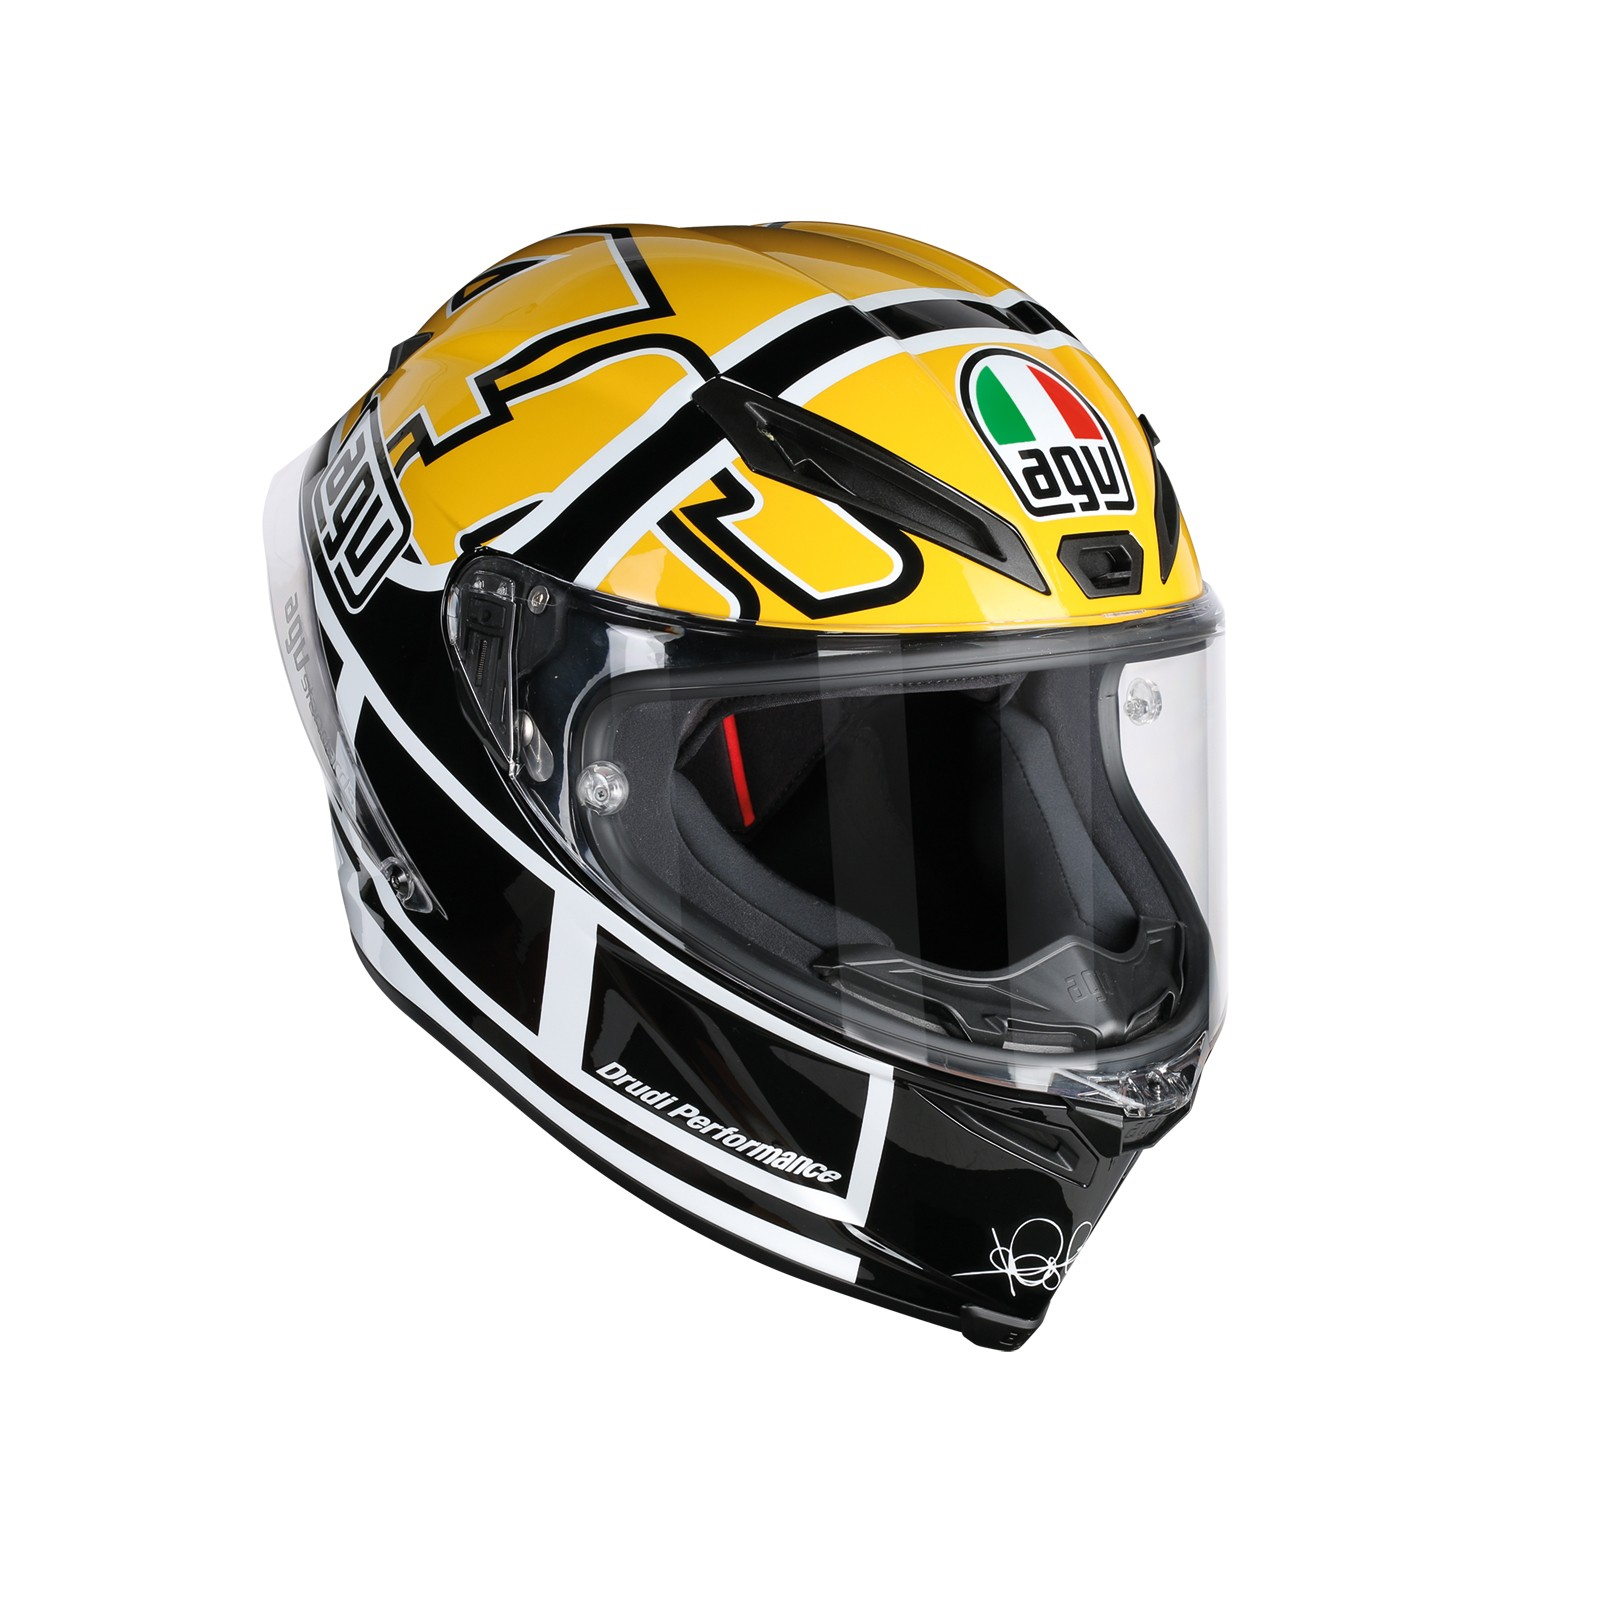 agv corsa r rossi goodwood helmet rossi replica helmet agv. Black Bedroom Furniture Sets. Home Design Ideas